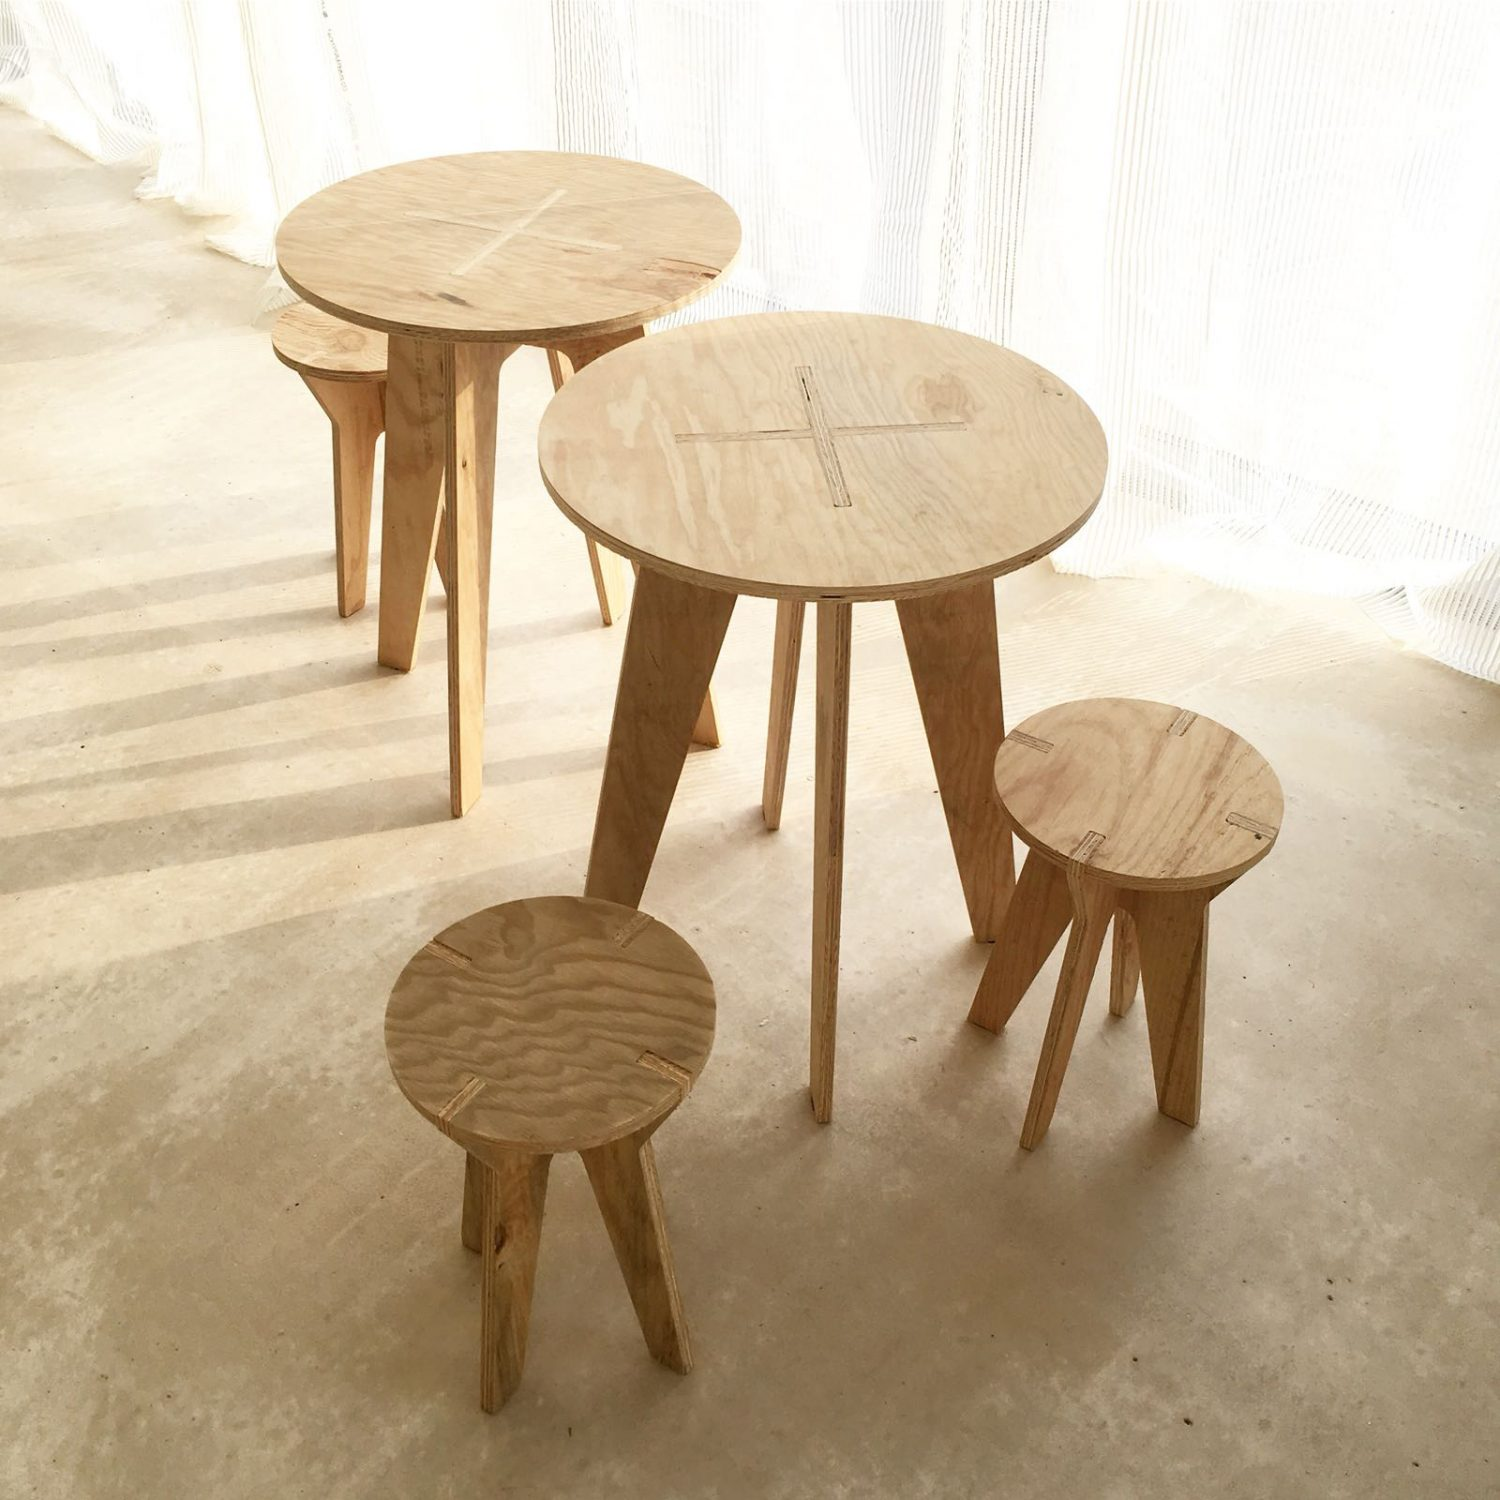 MEESVISSER_FAST FURNITURE_02